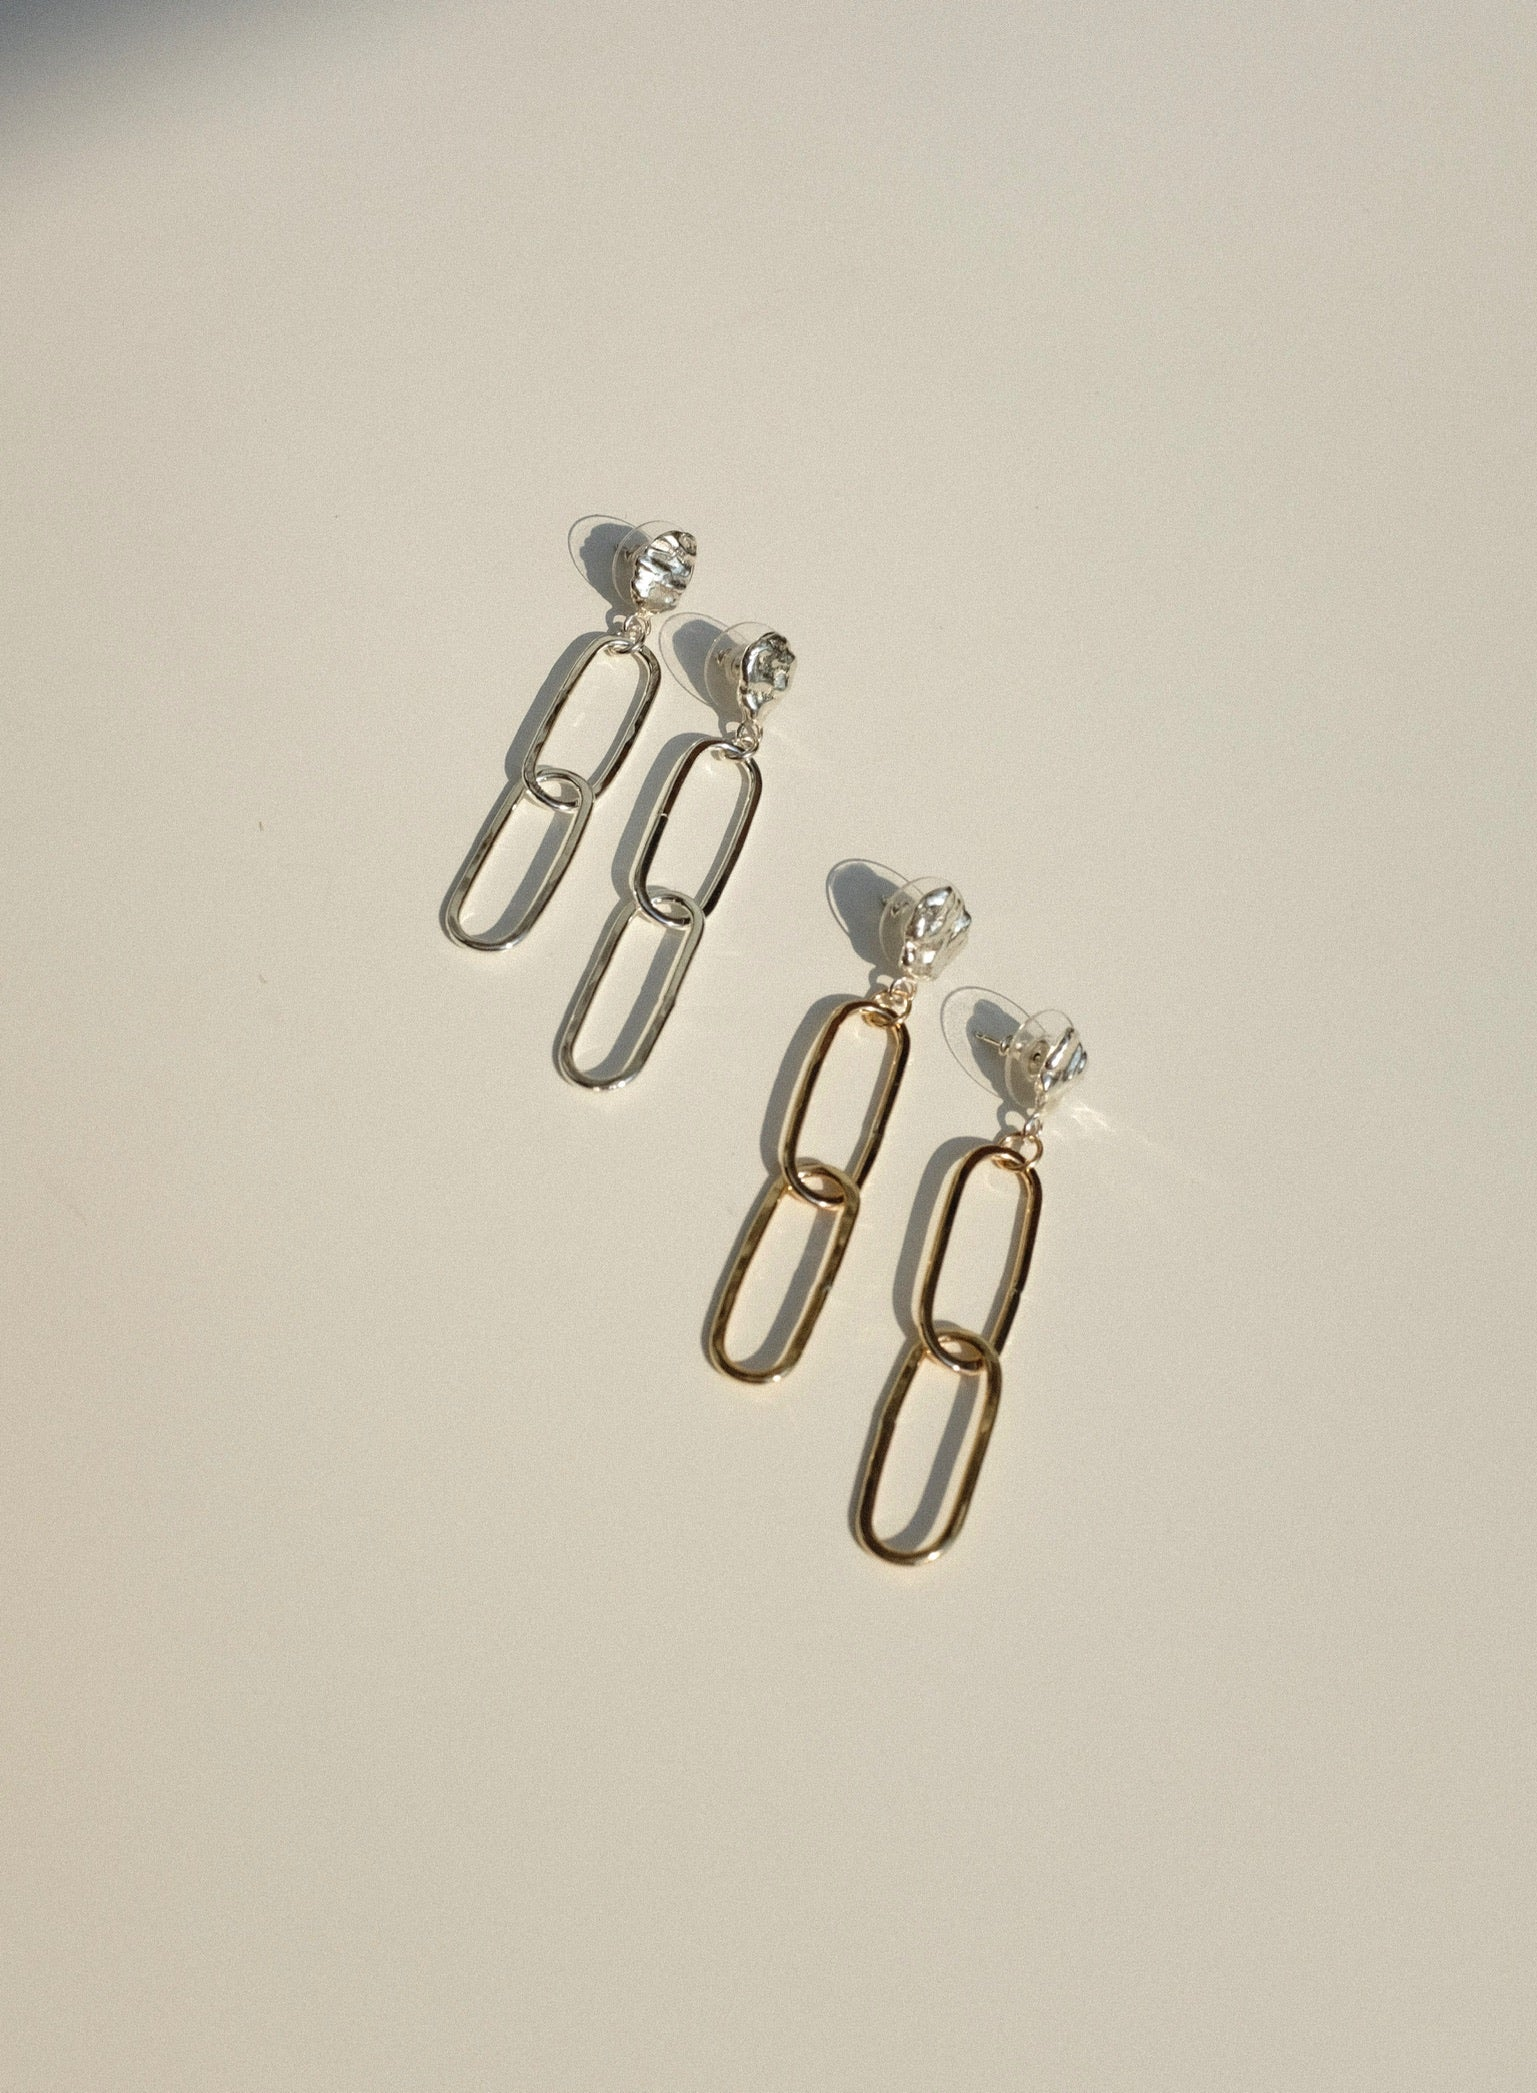 Sun & Selene Eudora Earrings/ Available in Gold & Sterling Silver